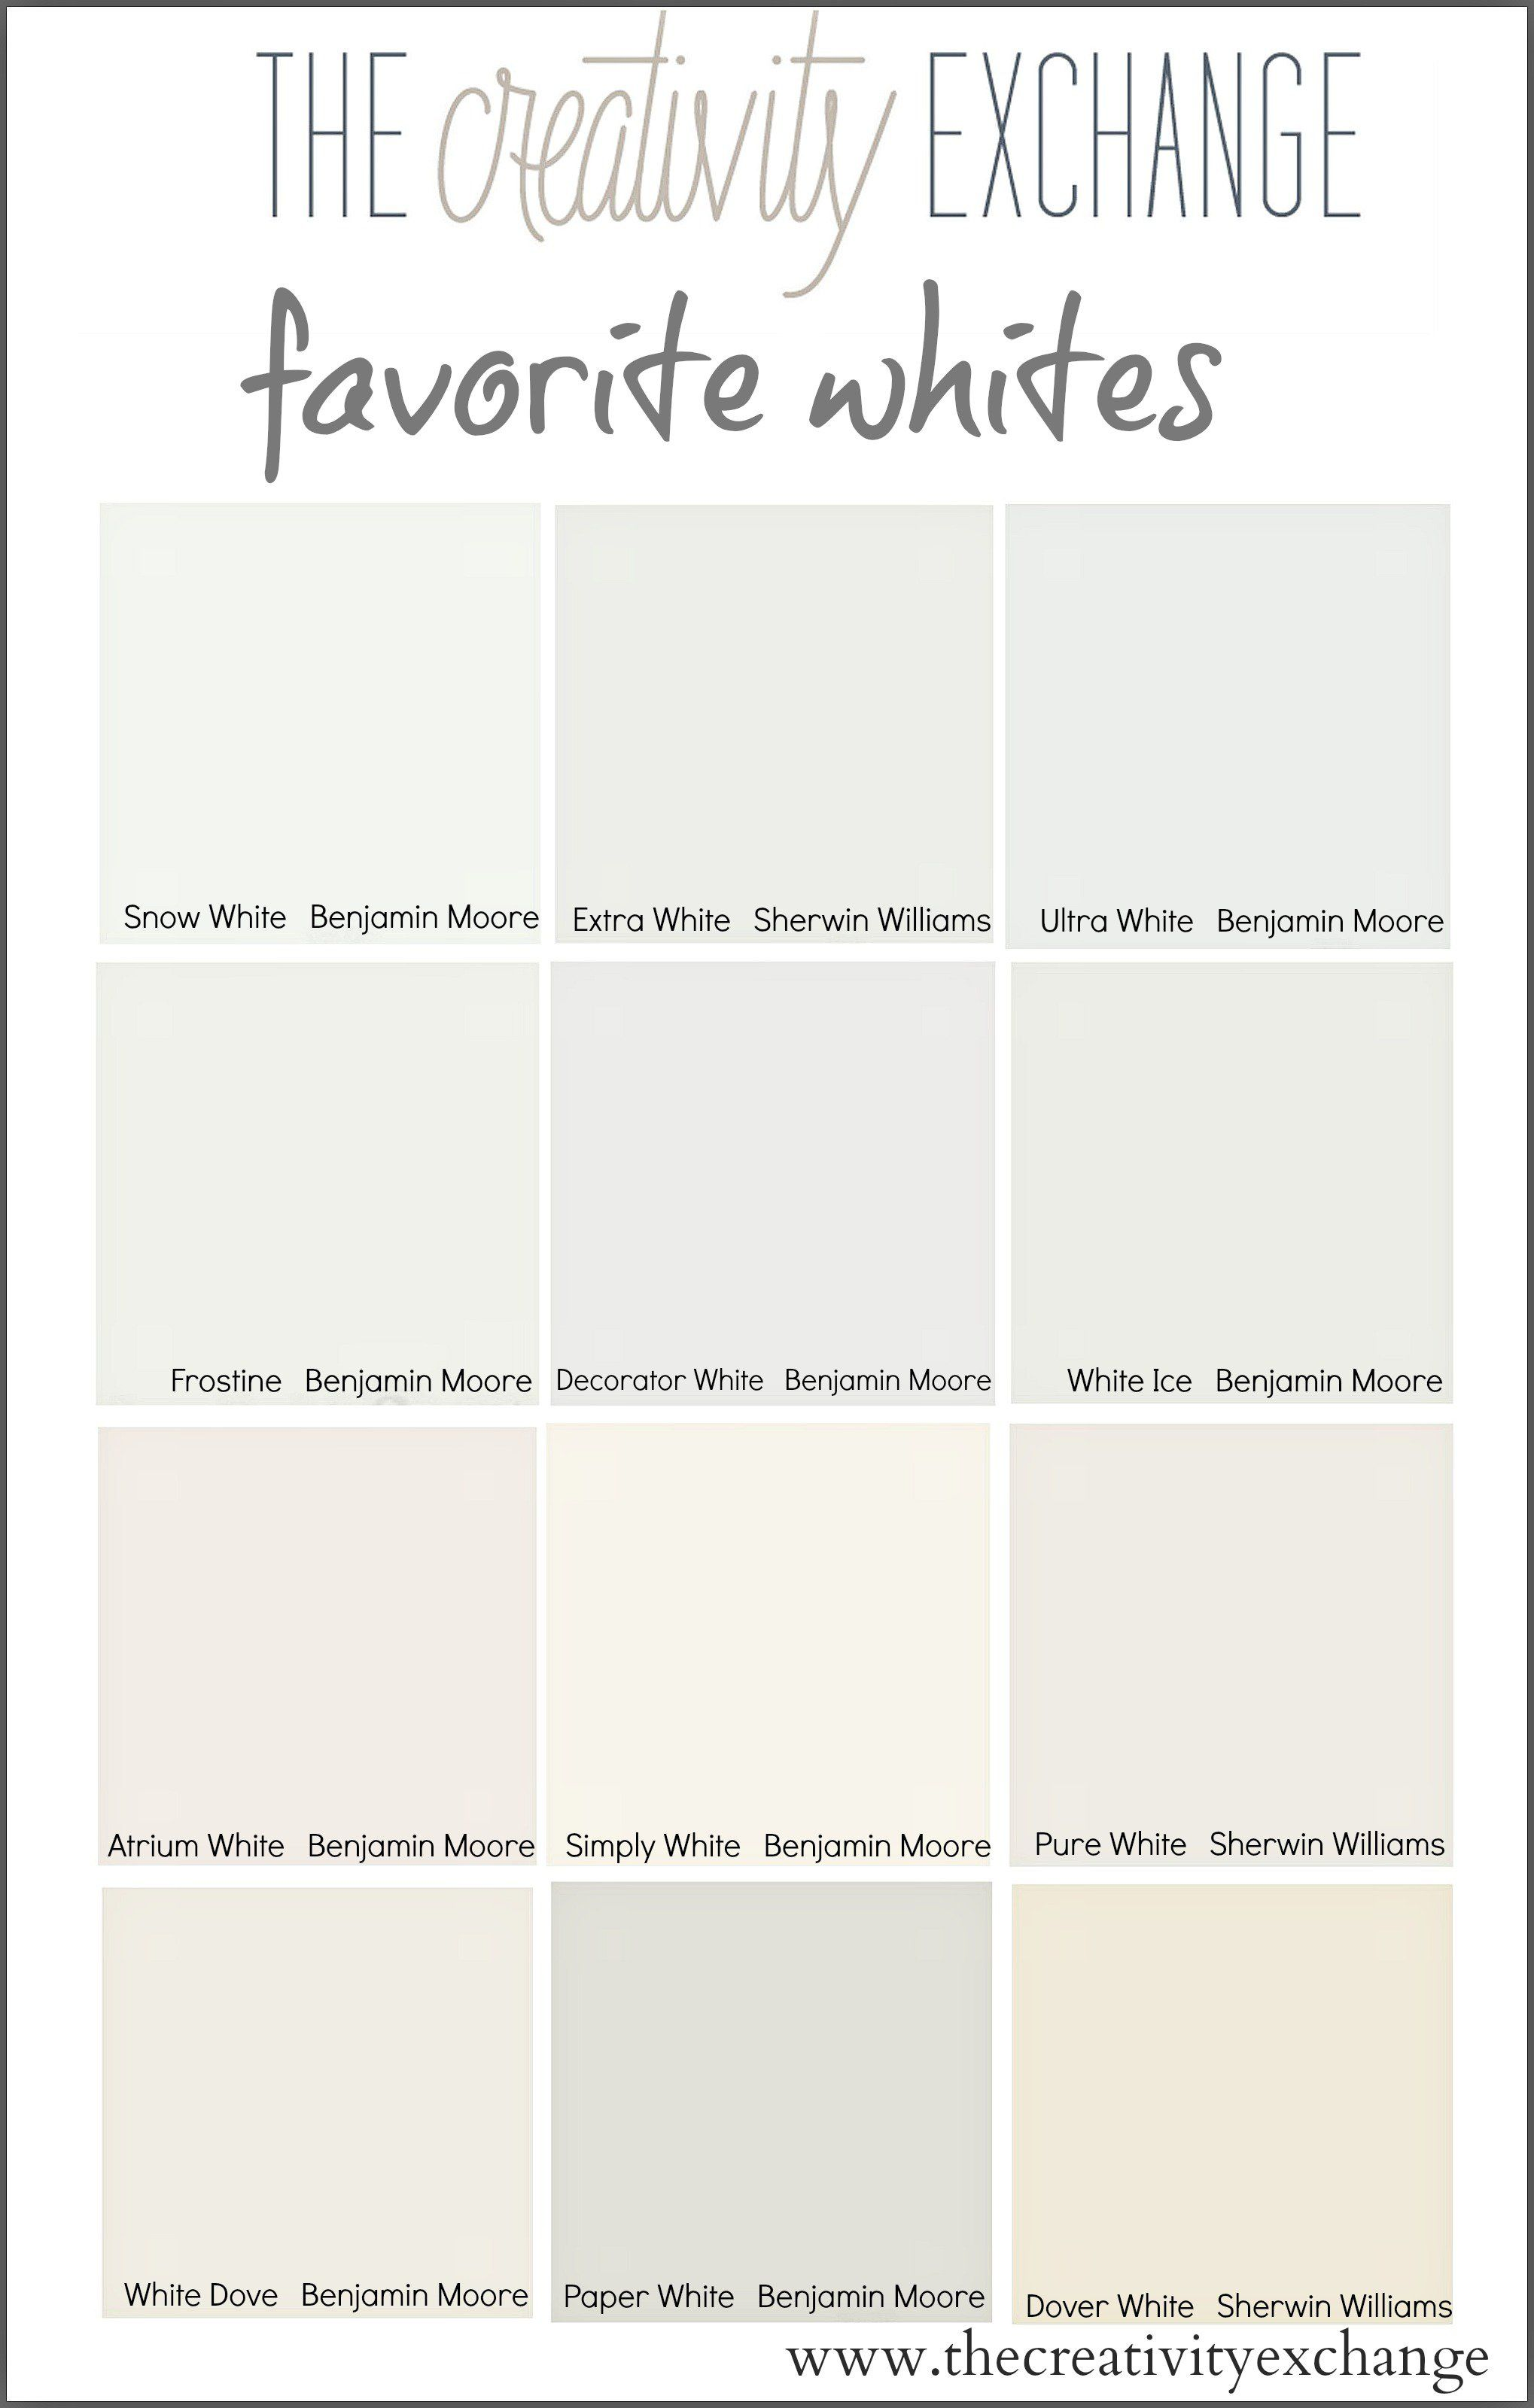 Choosing The Perfect White Is A Lot Easier With Our Shortcuts For How To Zone In Instantly On Best Paint Color Your Wall Cabinets Or Trim